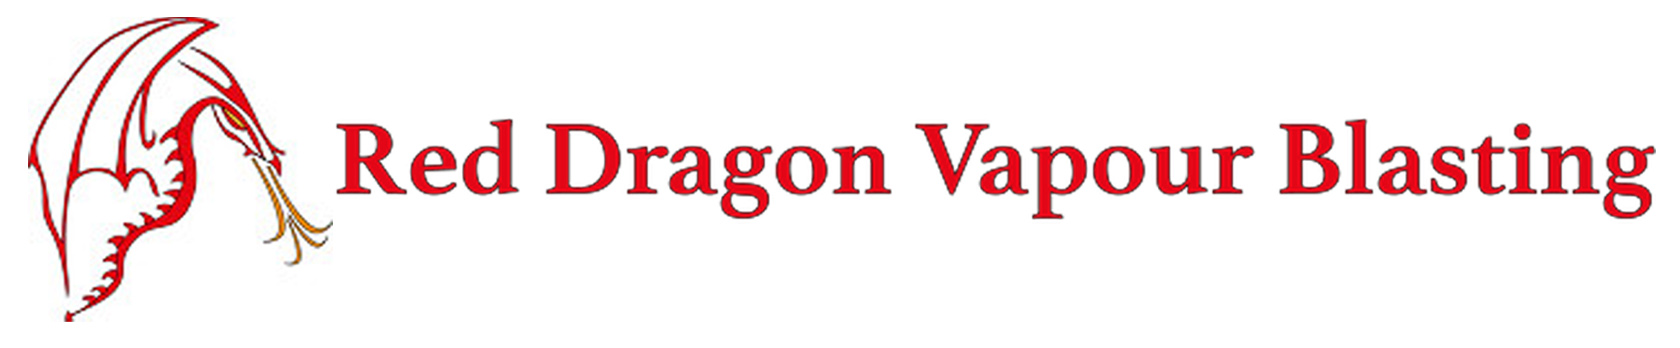 Vehicle and Component Cleaning - Red Dragon Vapour Blasting - Wrexham